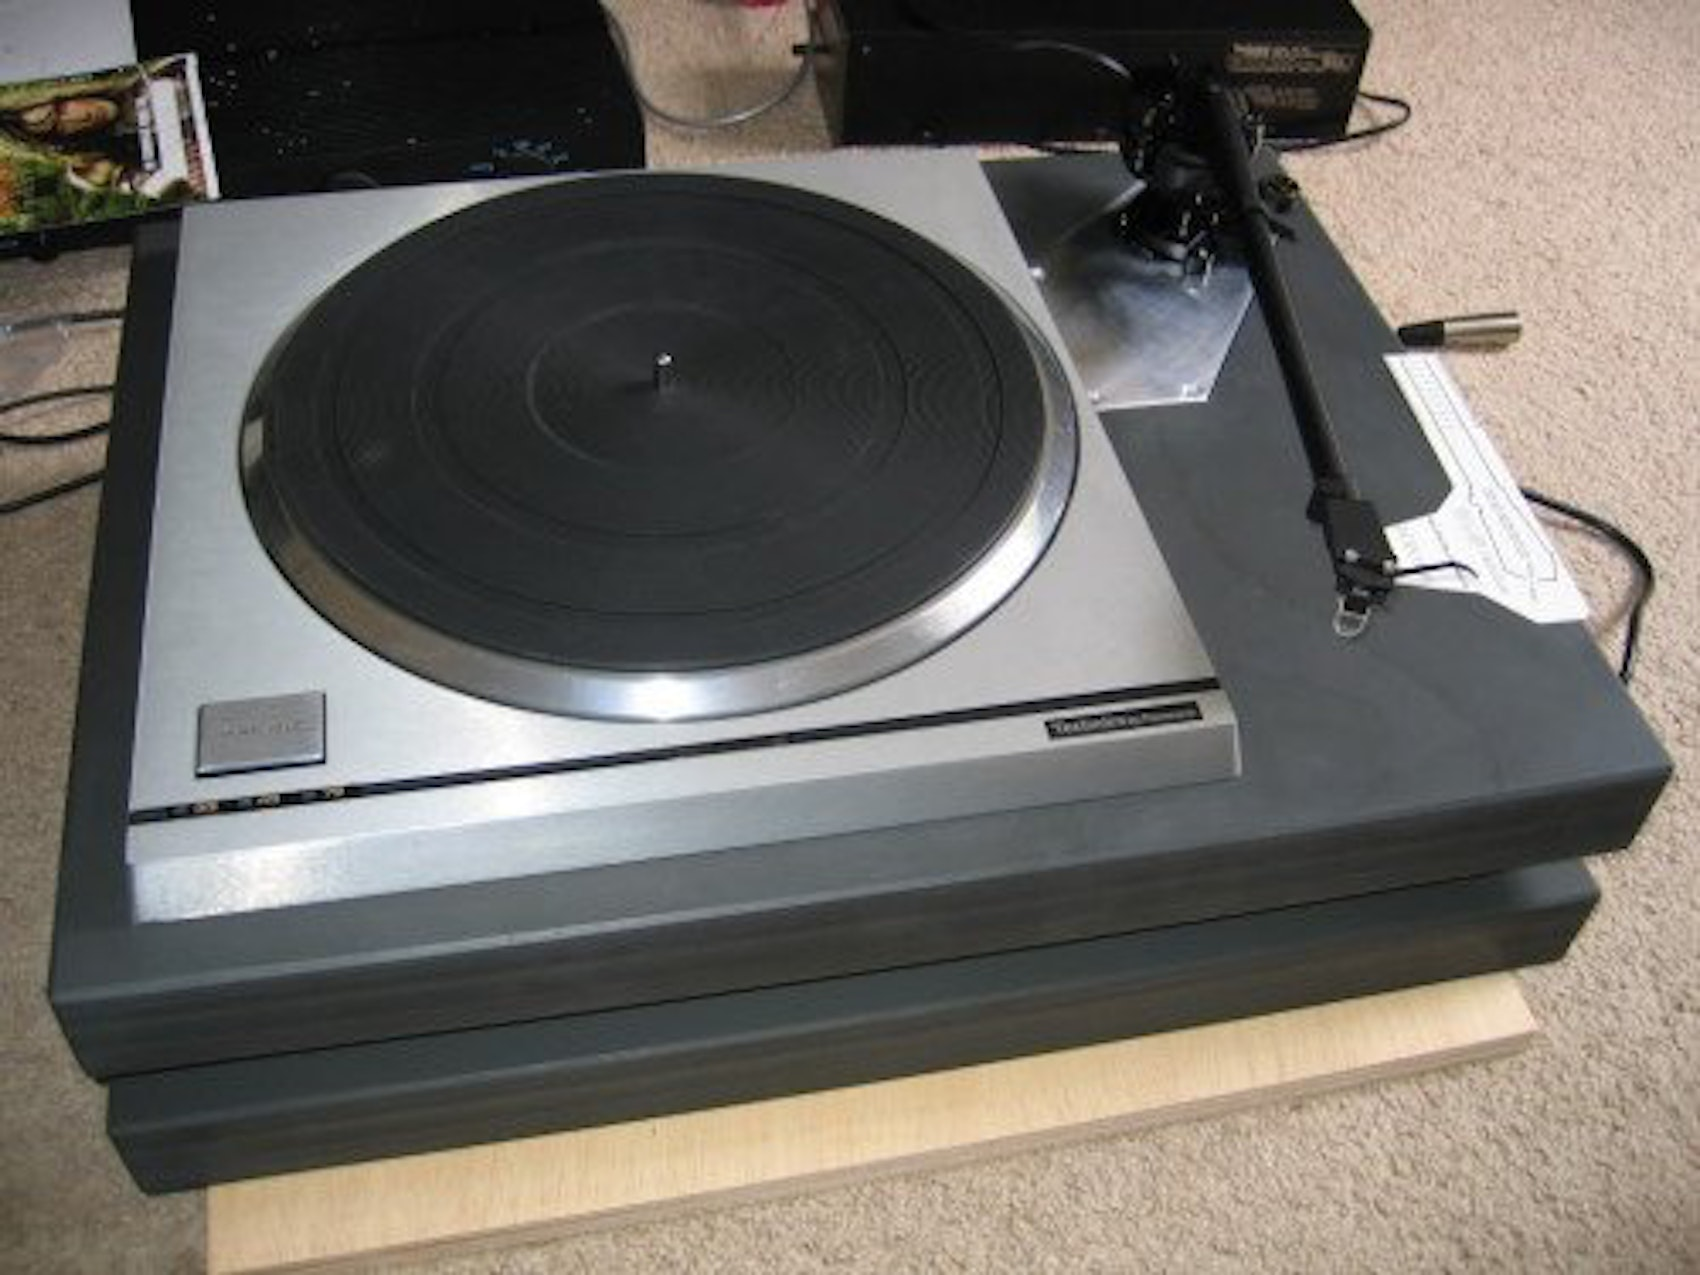 Buried Treasure: 5 Holy Grail Turntables You Need To Know